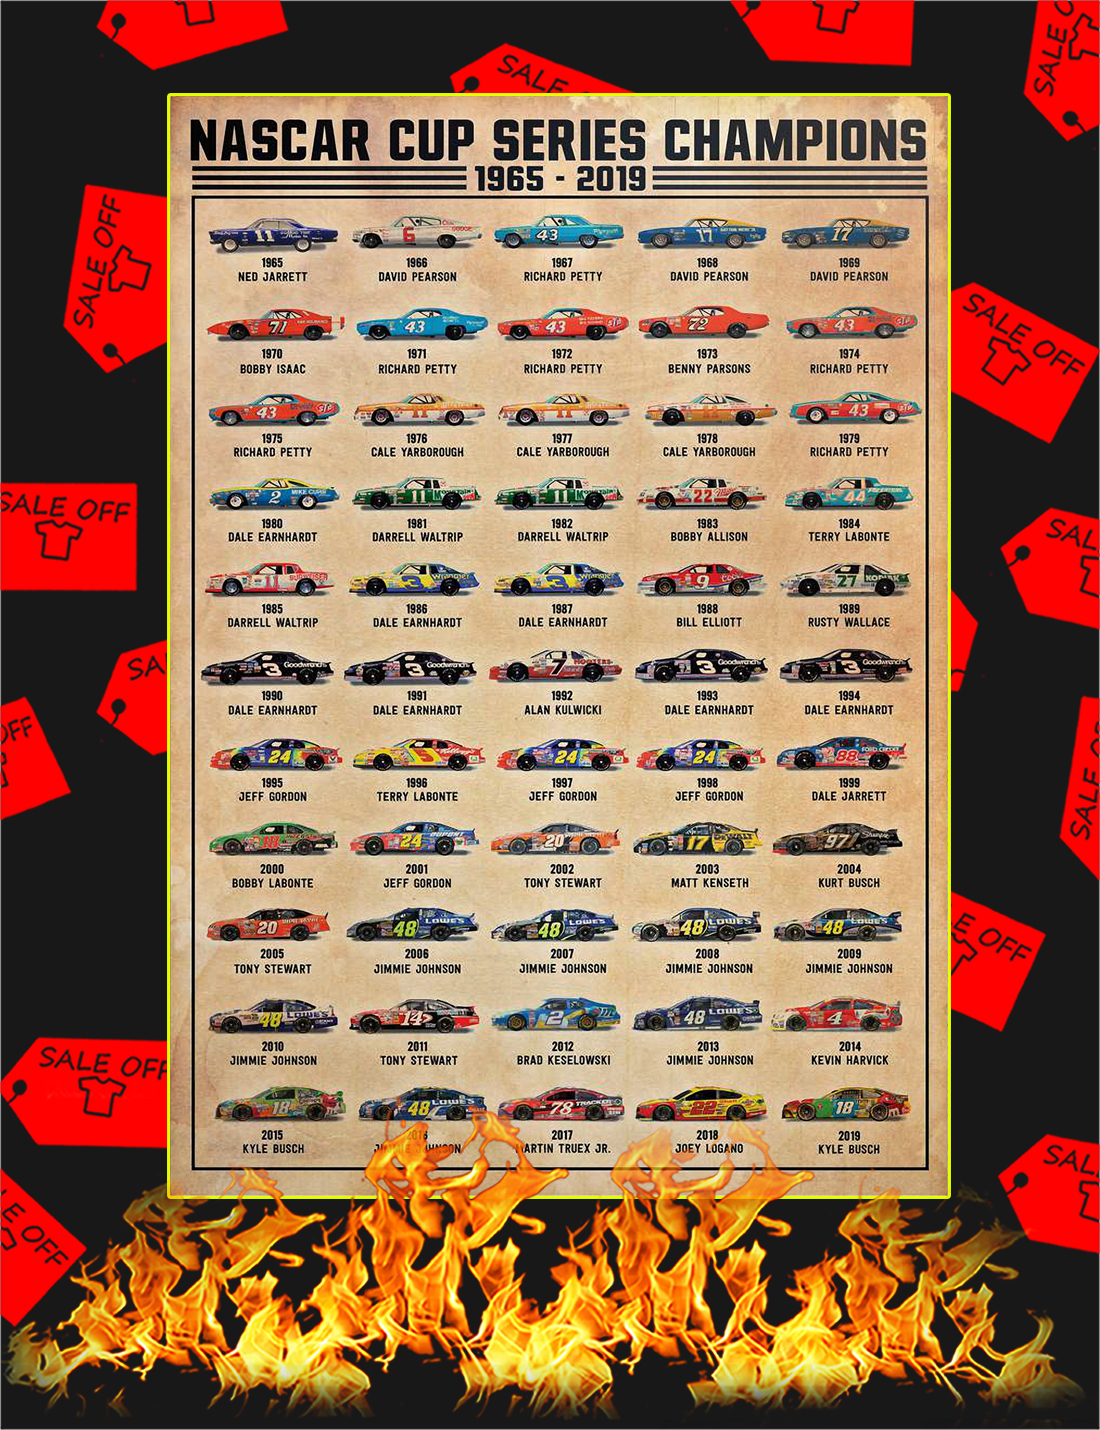 Nascar cup series champions 1965 2019 poster - A4